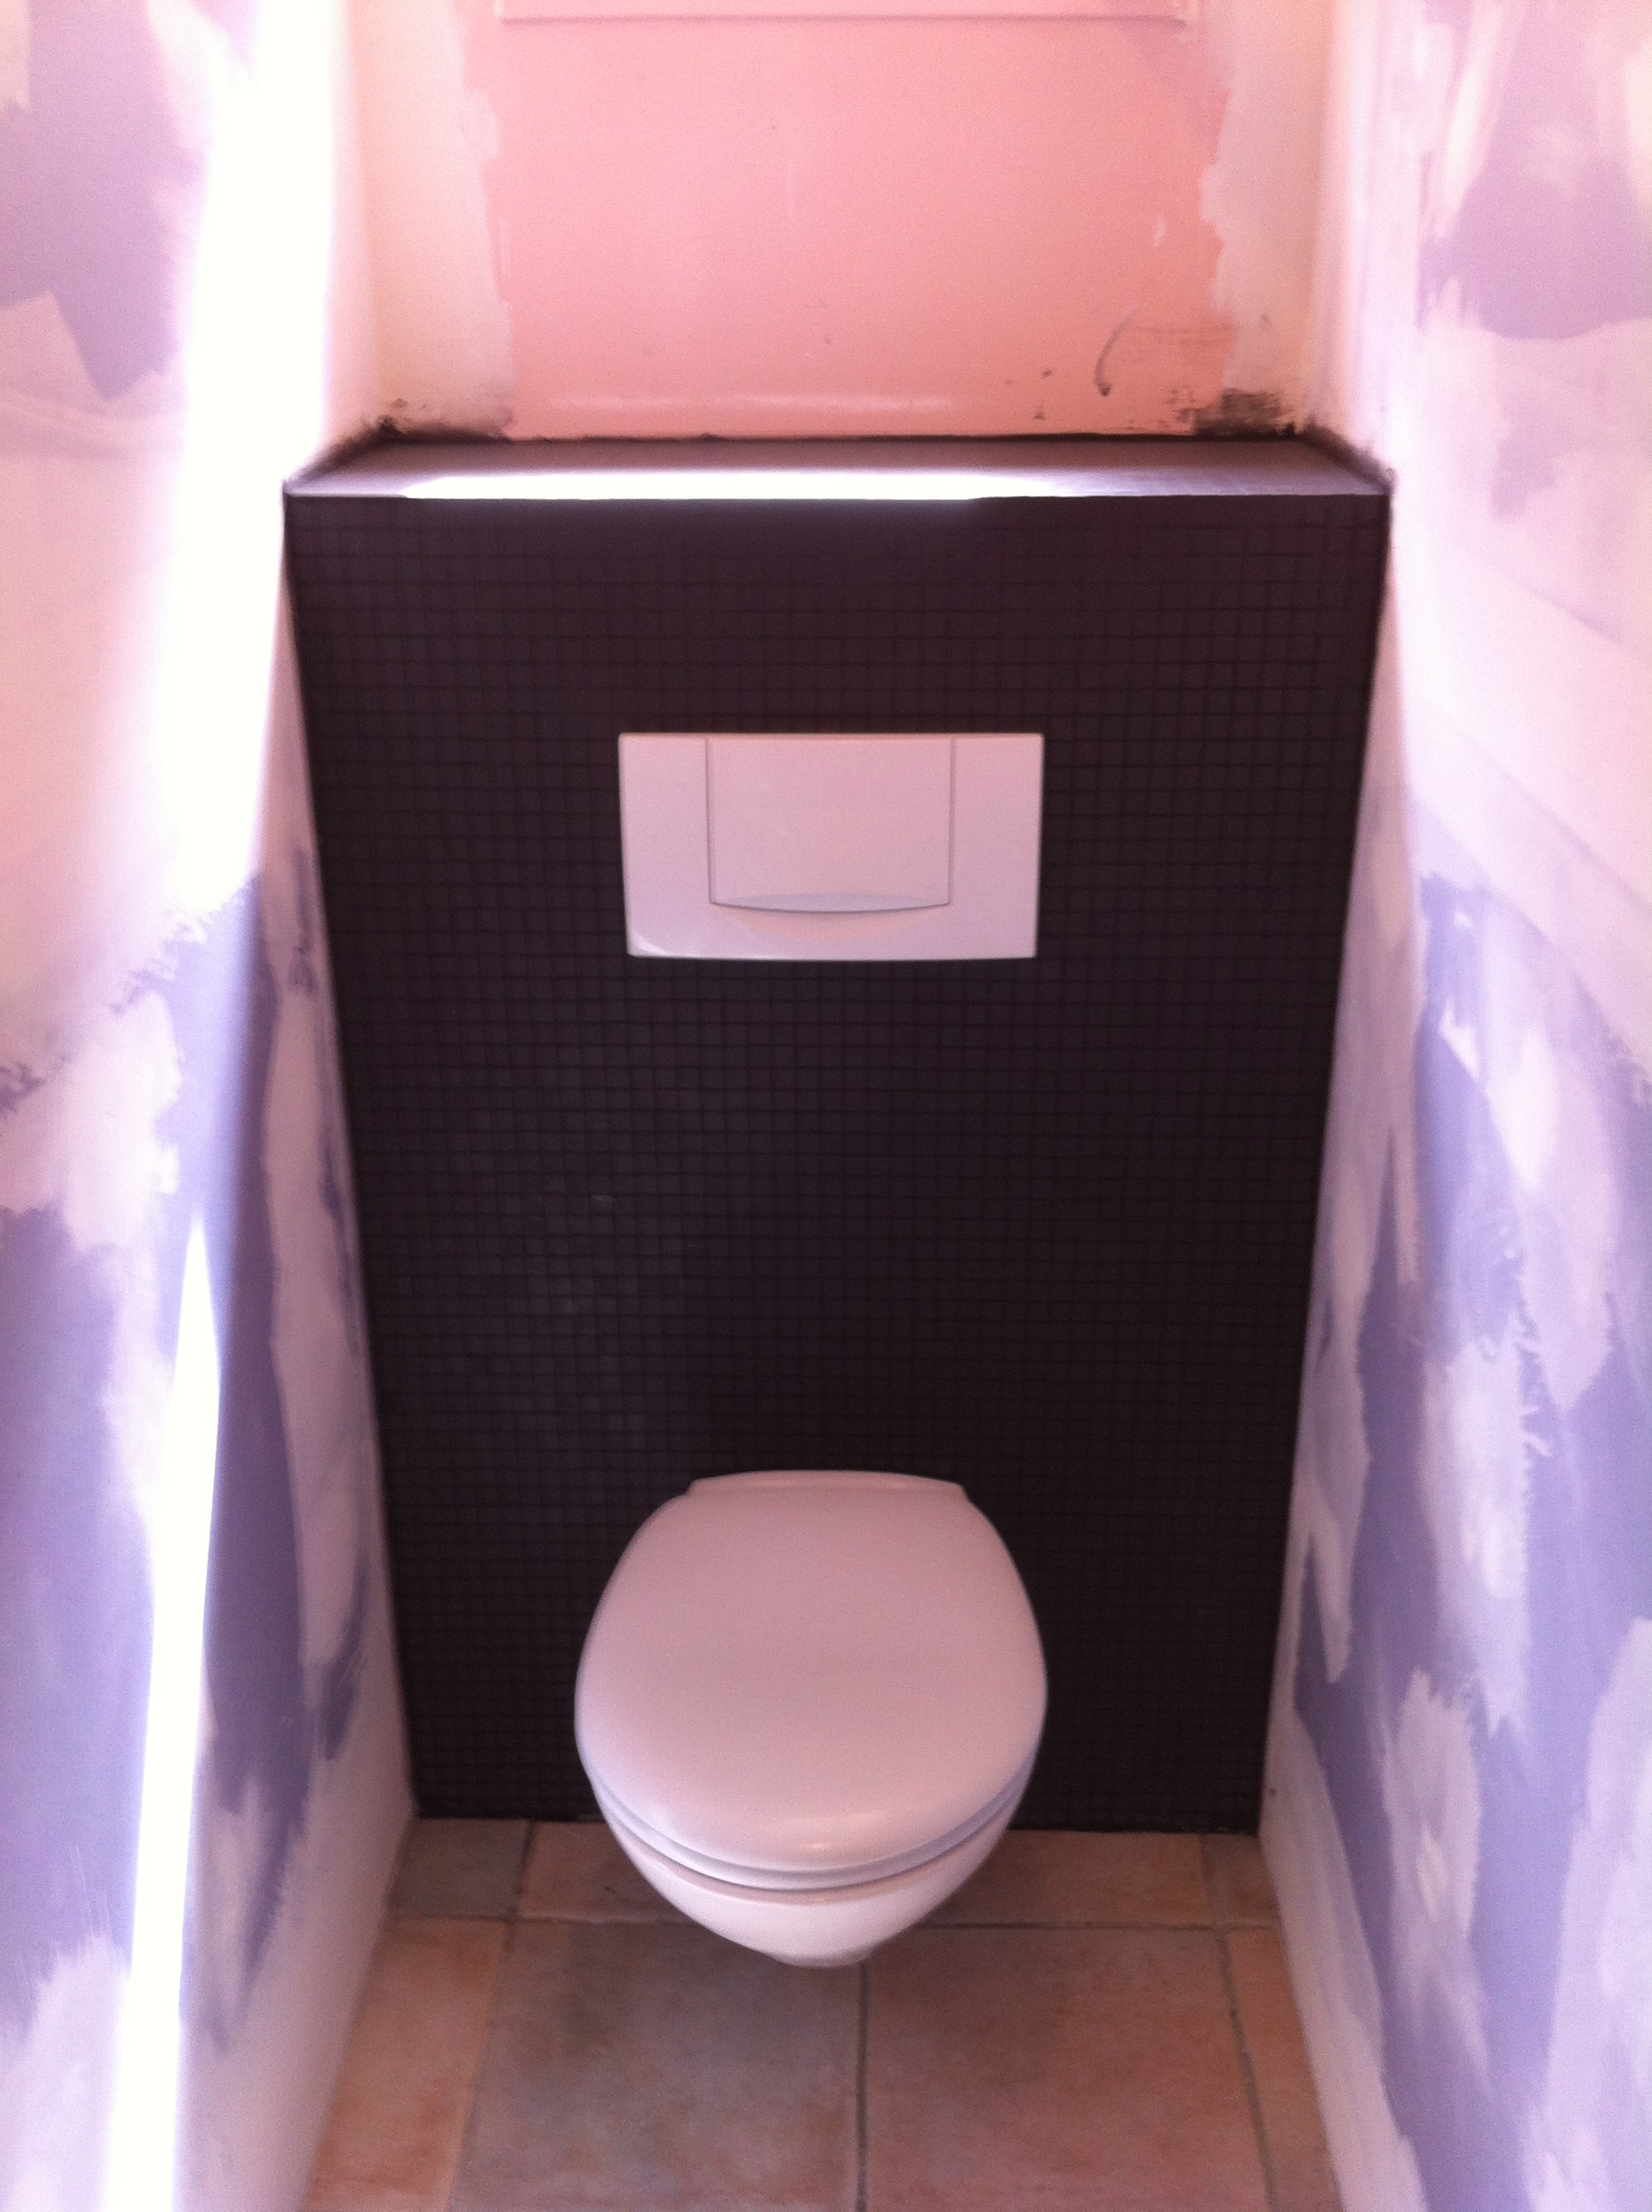 Wc suspendu wc encastr dream house for Arrivee d eau wc suspendu